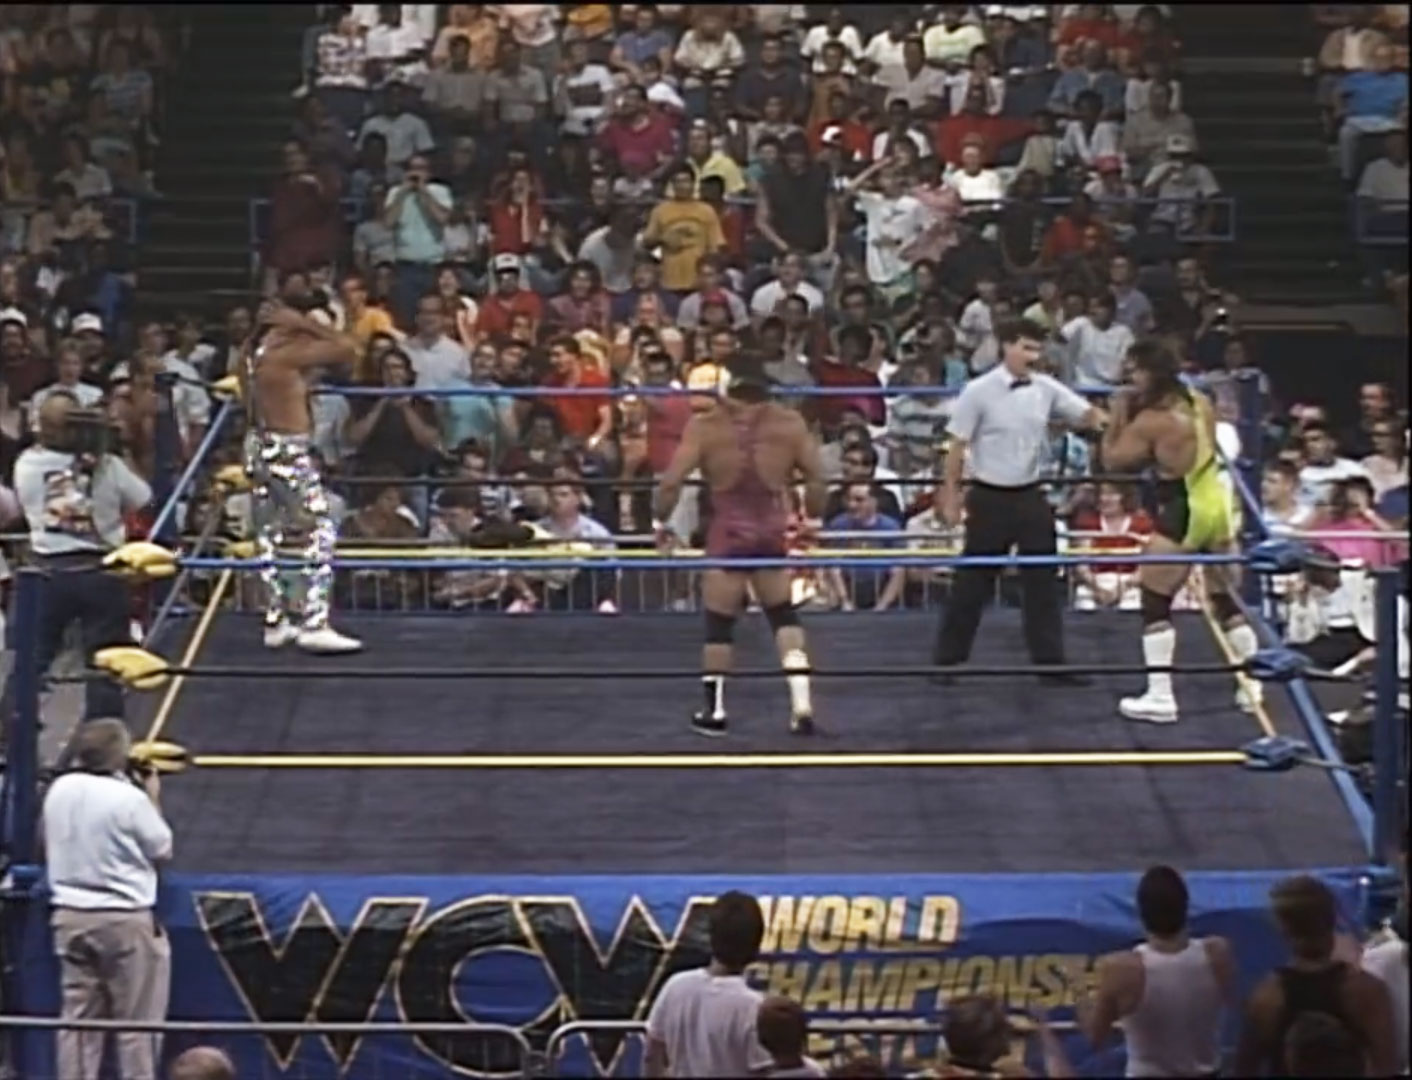 Steiner Brothers vs. Fabulous Freebirds NWA The Great American Bash '90 Jul 7th 1990